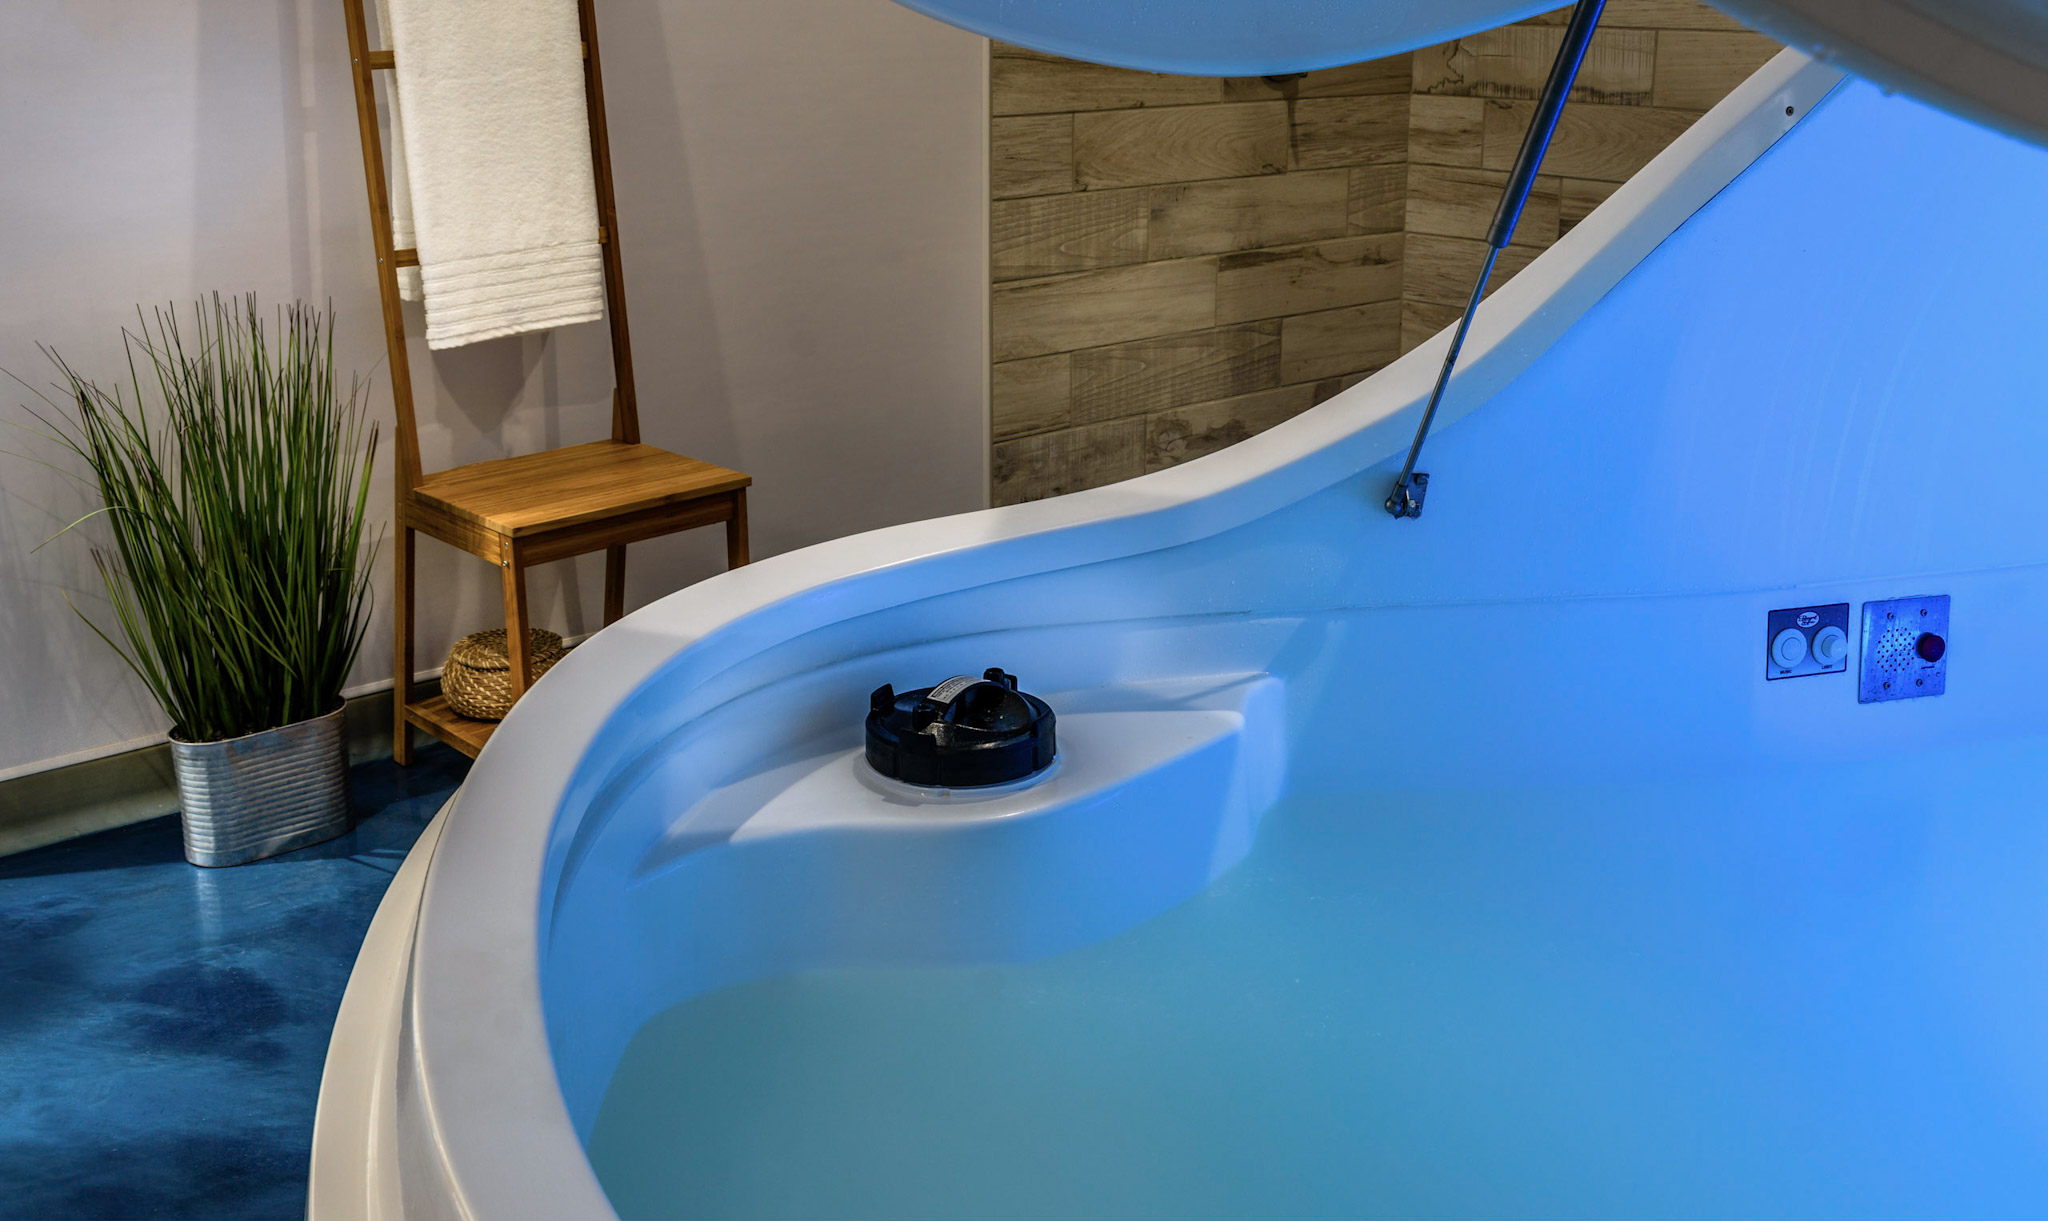 Flotation Therapy Float Suite at Float Spa SF in Sneads Ferry North Carolina 28460